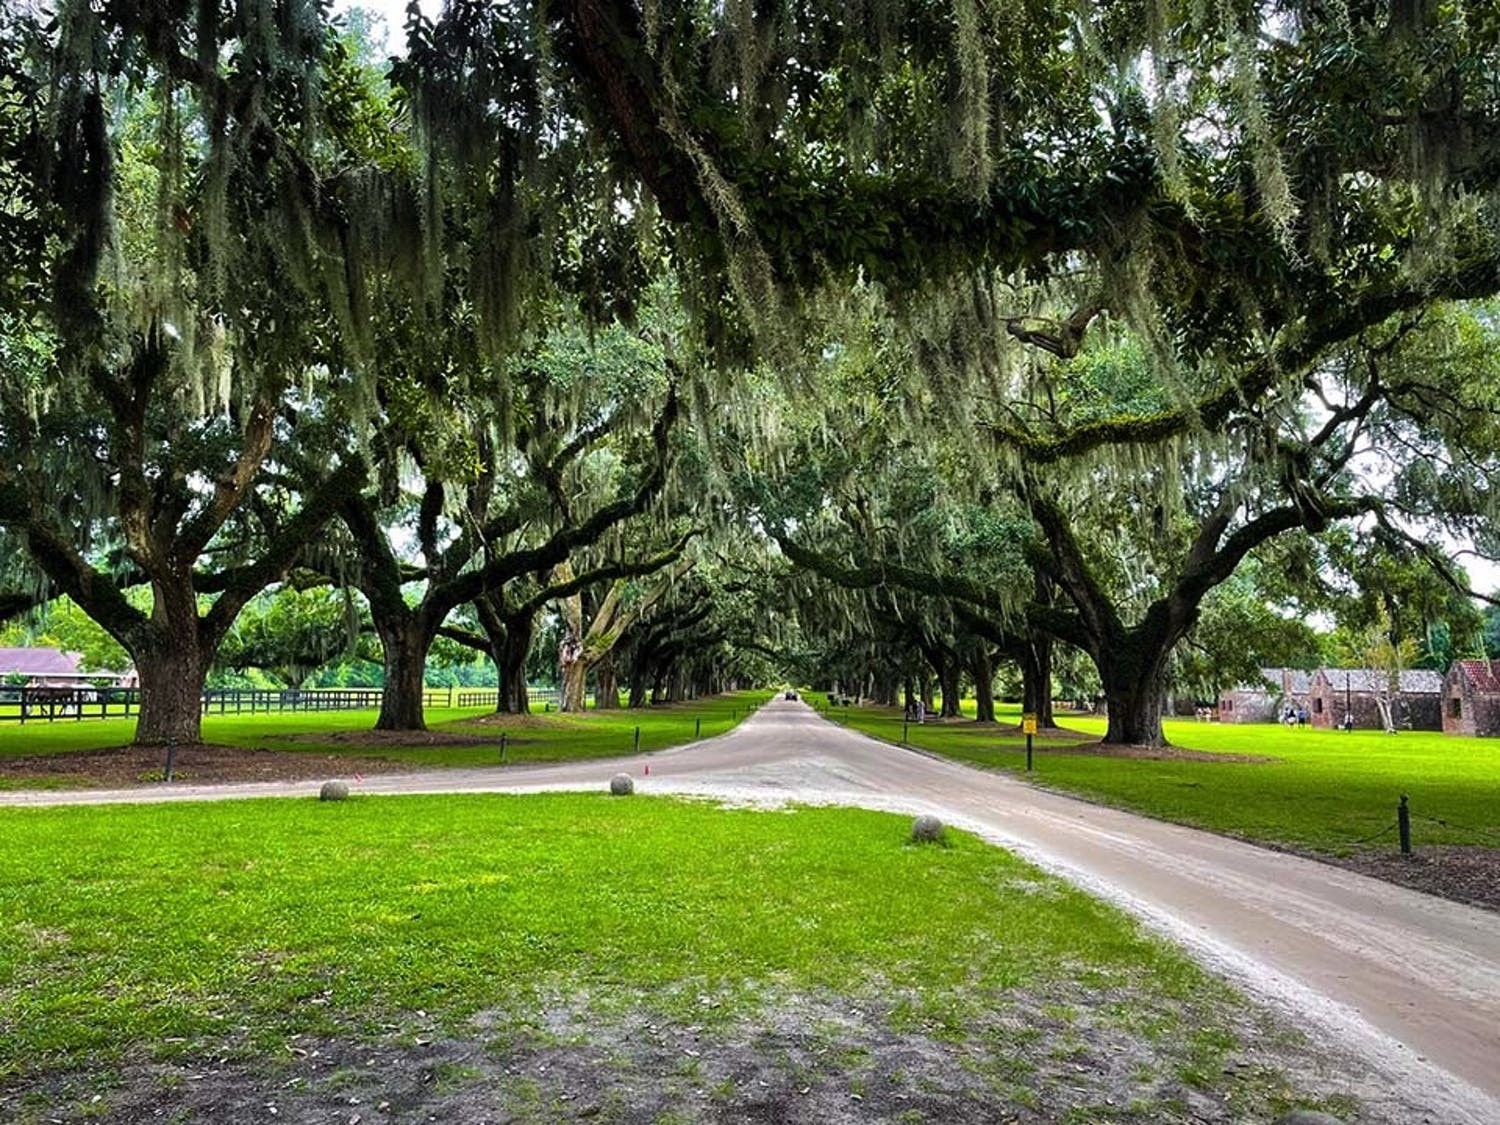 A row of angel oak trees lining the drive to the main house on the Boone Hall Plantation with the slave quarters nearby. Boone Hall is a tourist site that educates visitors about the history of slavery and about the role of enslaved people on the plantation.